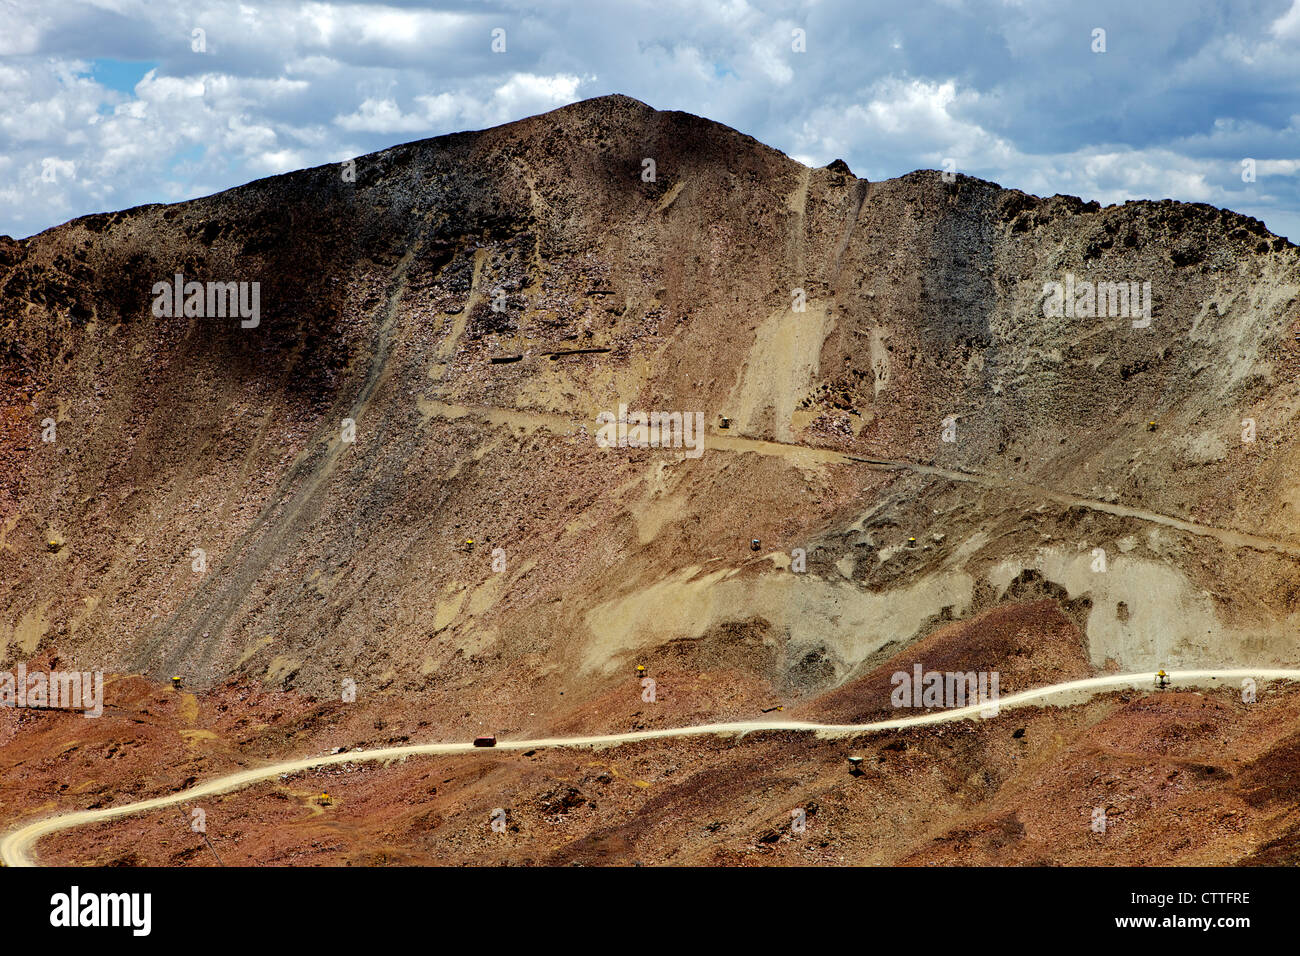 Mountain road View from Mt. Chacaltaya altiplano in distance, Calahuyo near La Paz, Bolivia, Andes, South America, Stock Photo